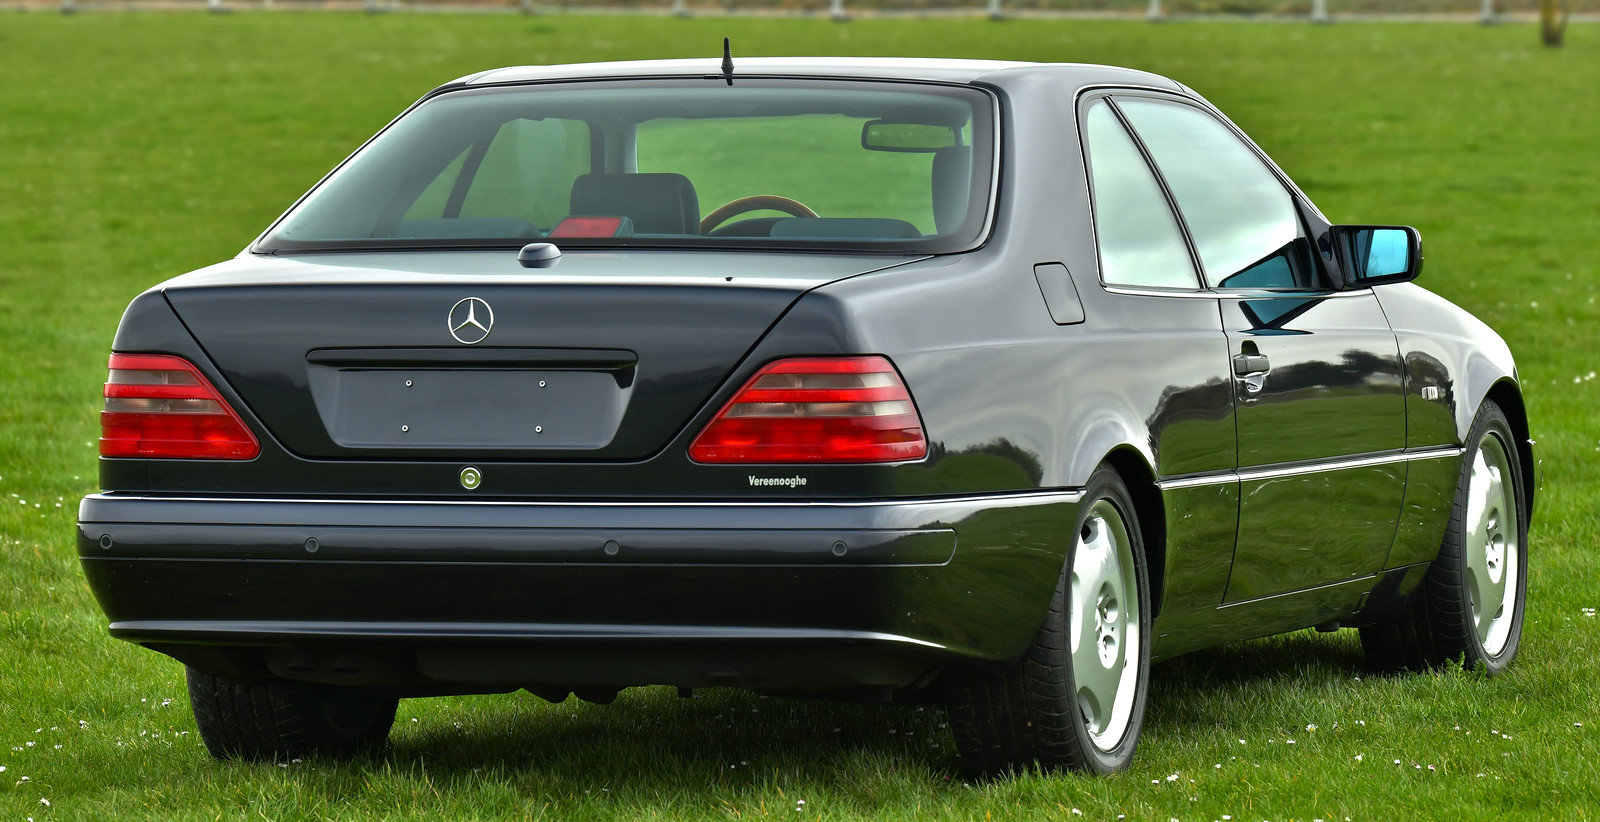 1998 Mercedes-Benz CL500 Sunroof Coupé For Sale (picture 3 of 6)